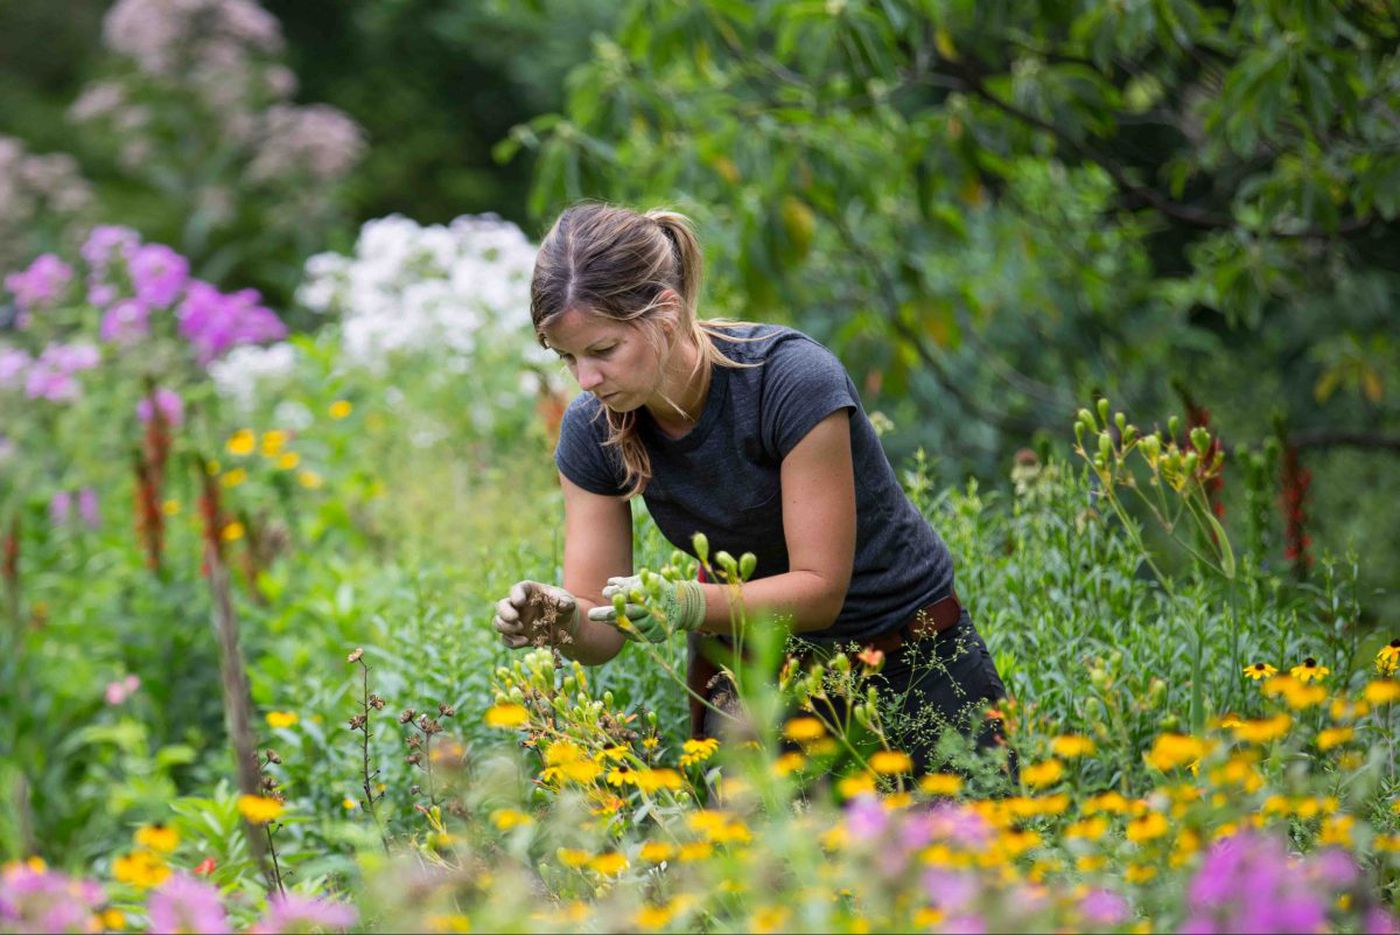 Aug 11-17: In the garden, it's time to…